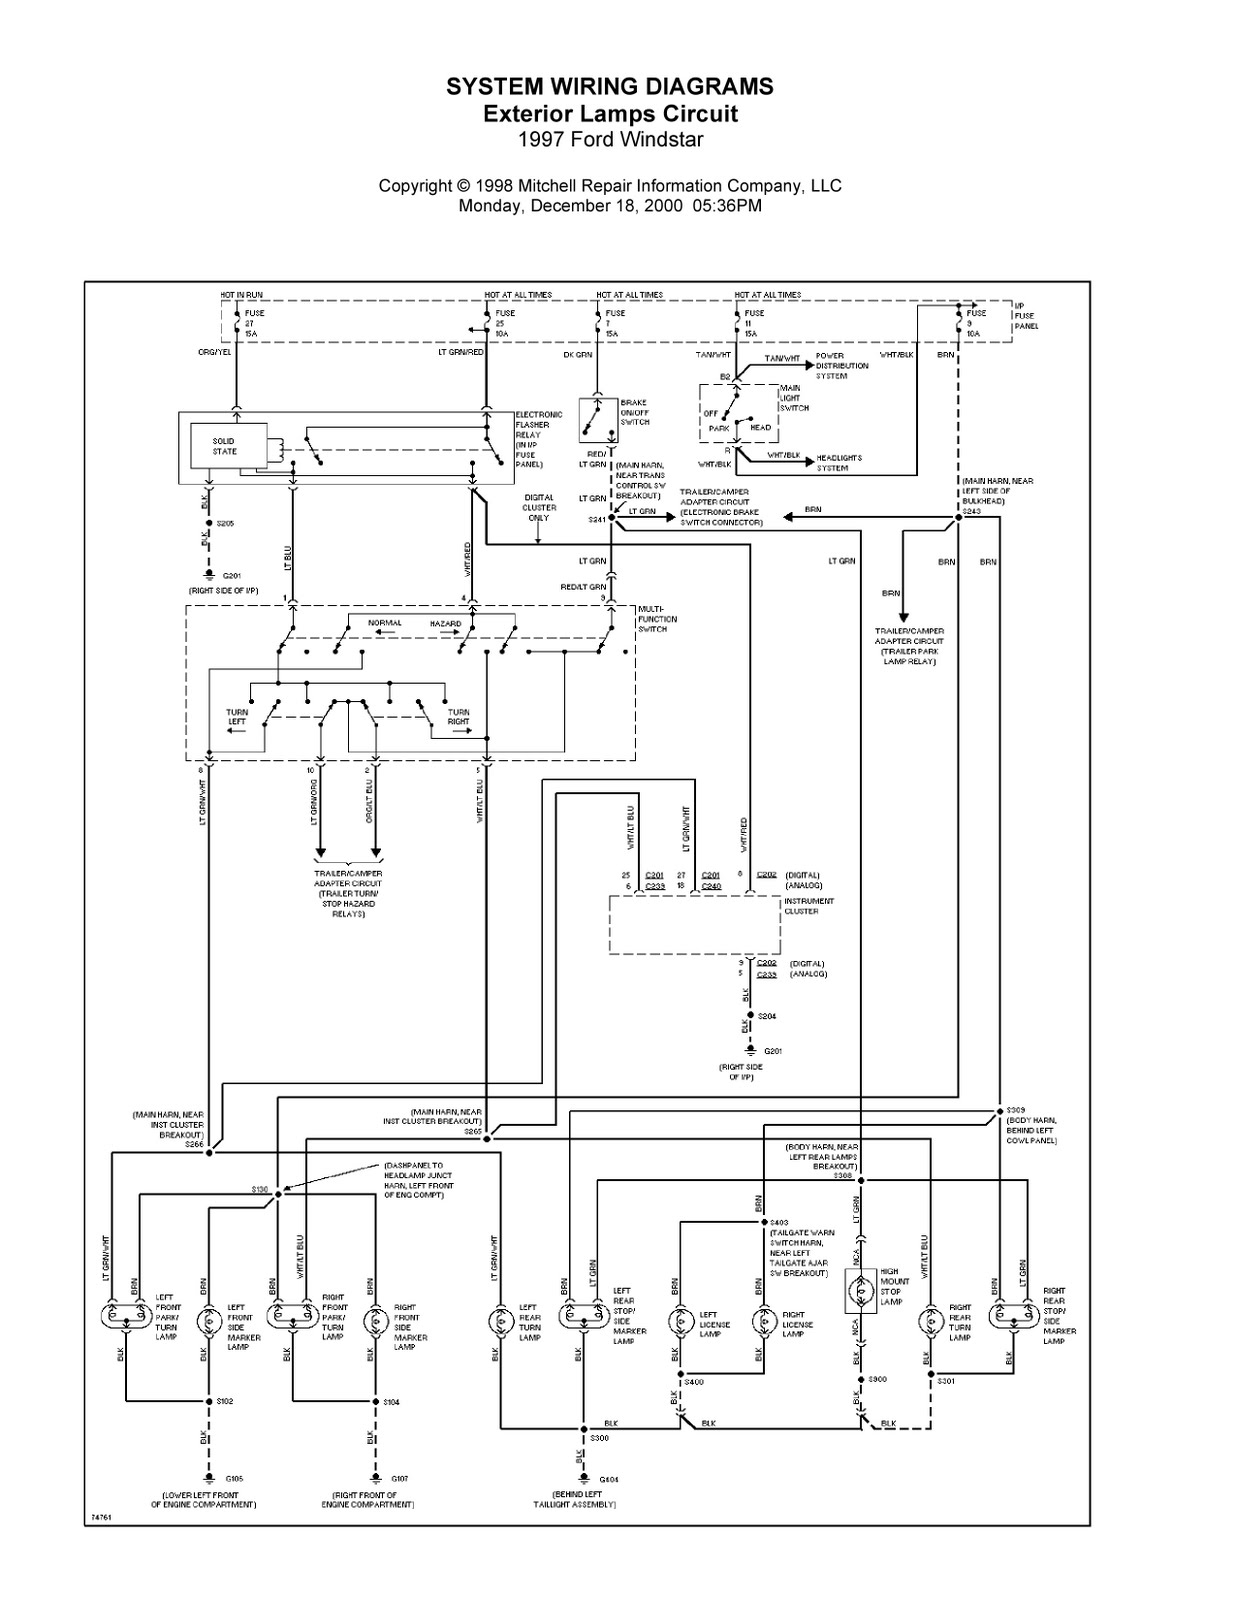 Ford Taurus Electrical Diagram The Best Wiring Html